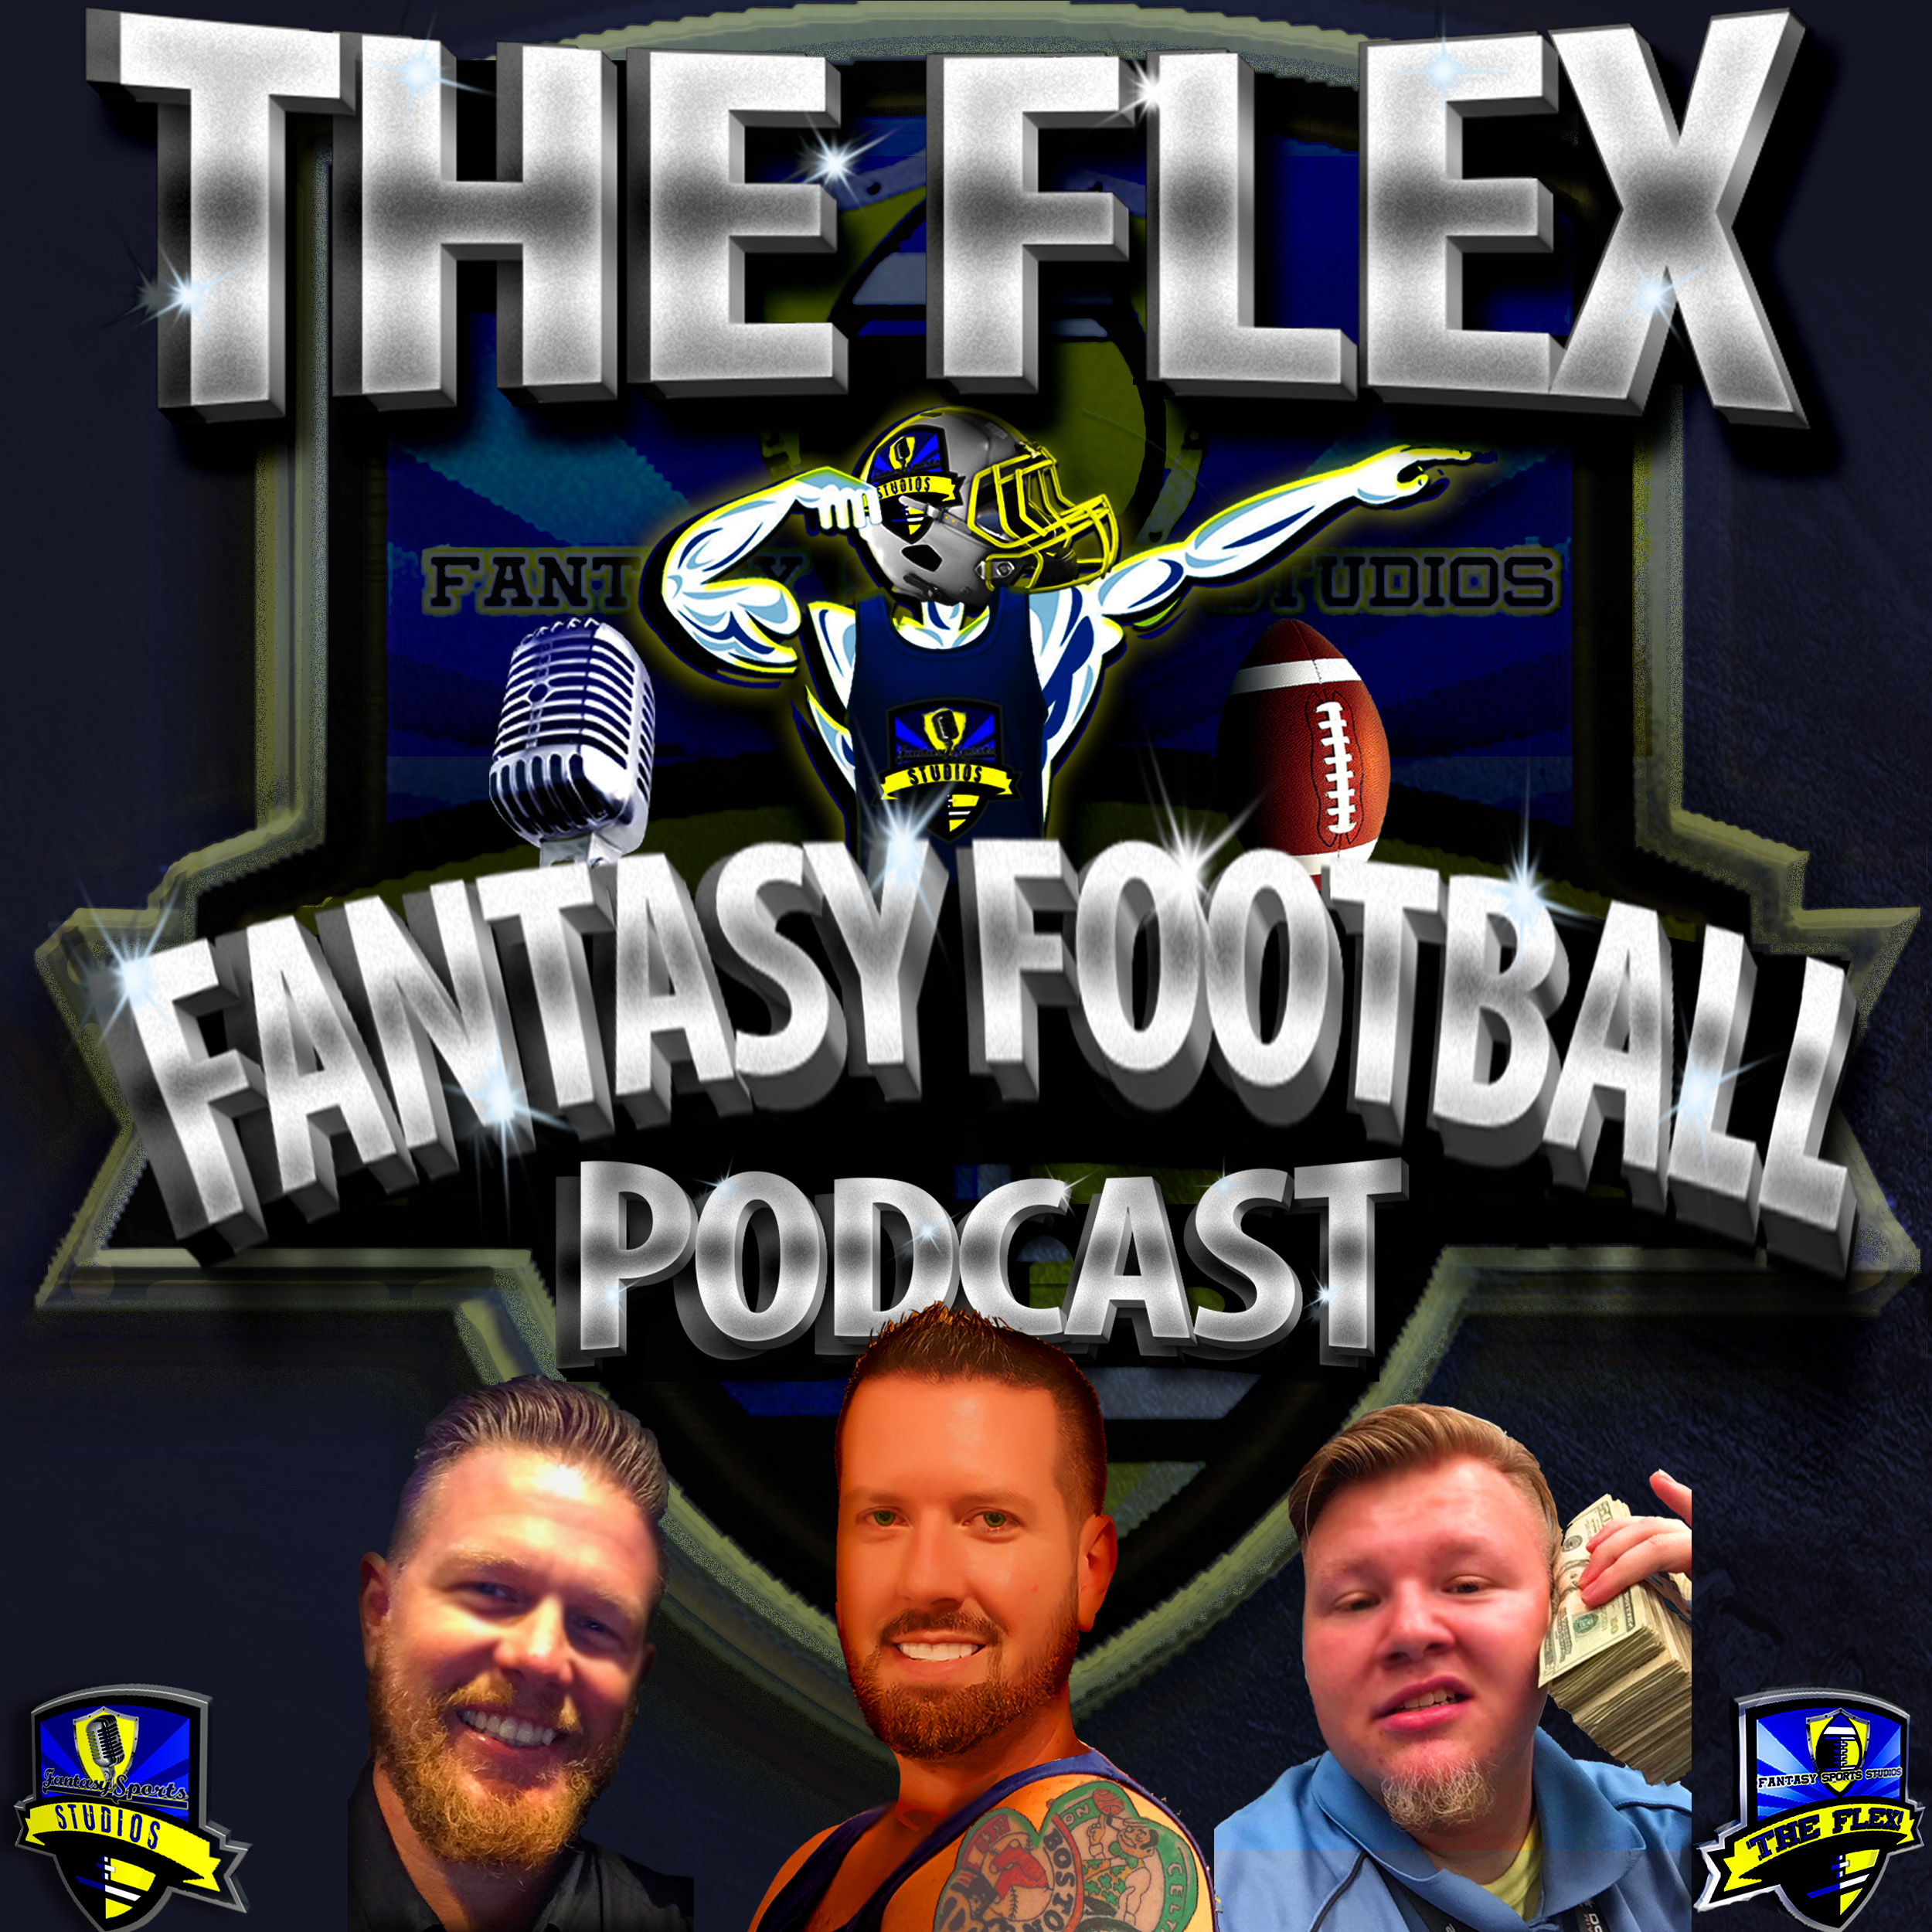 The Flex! Fantasy Football Podcast - Presented by Fantasy Sports Studios